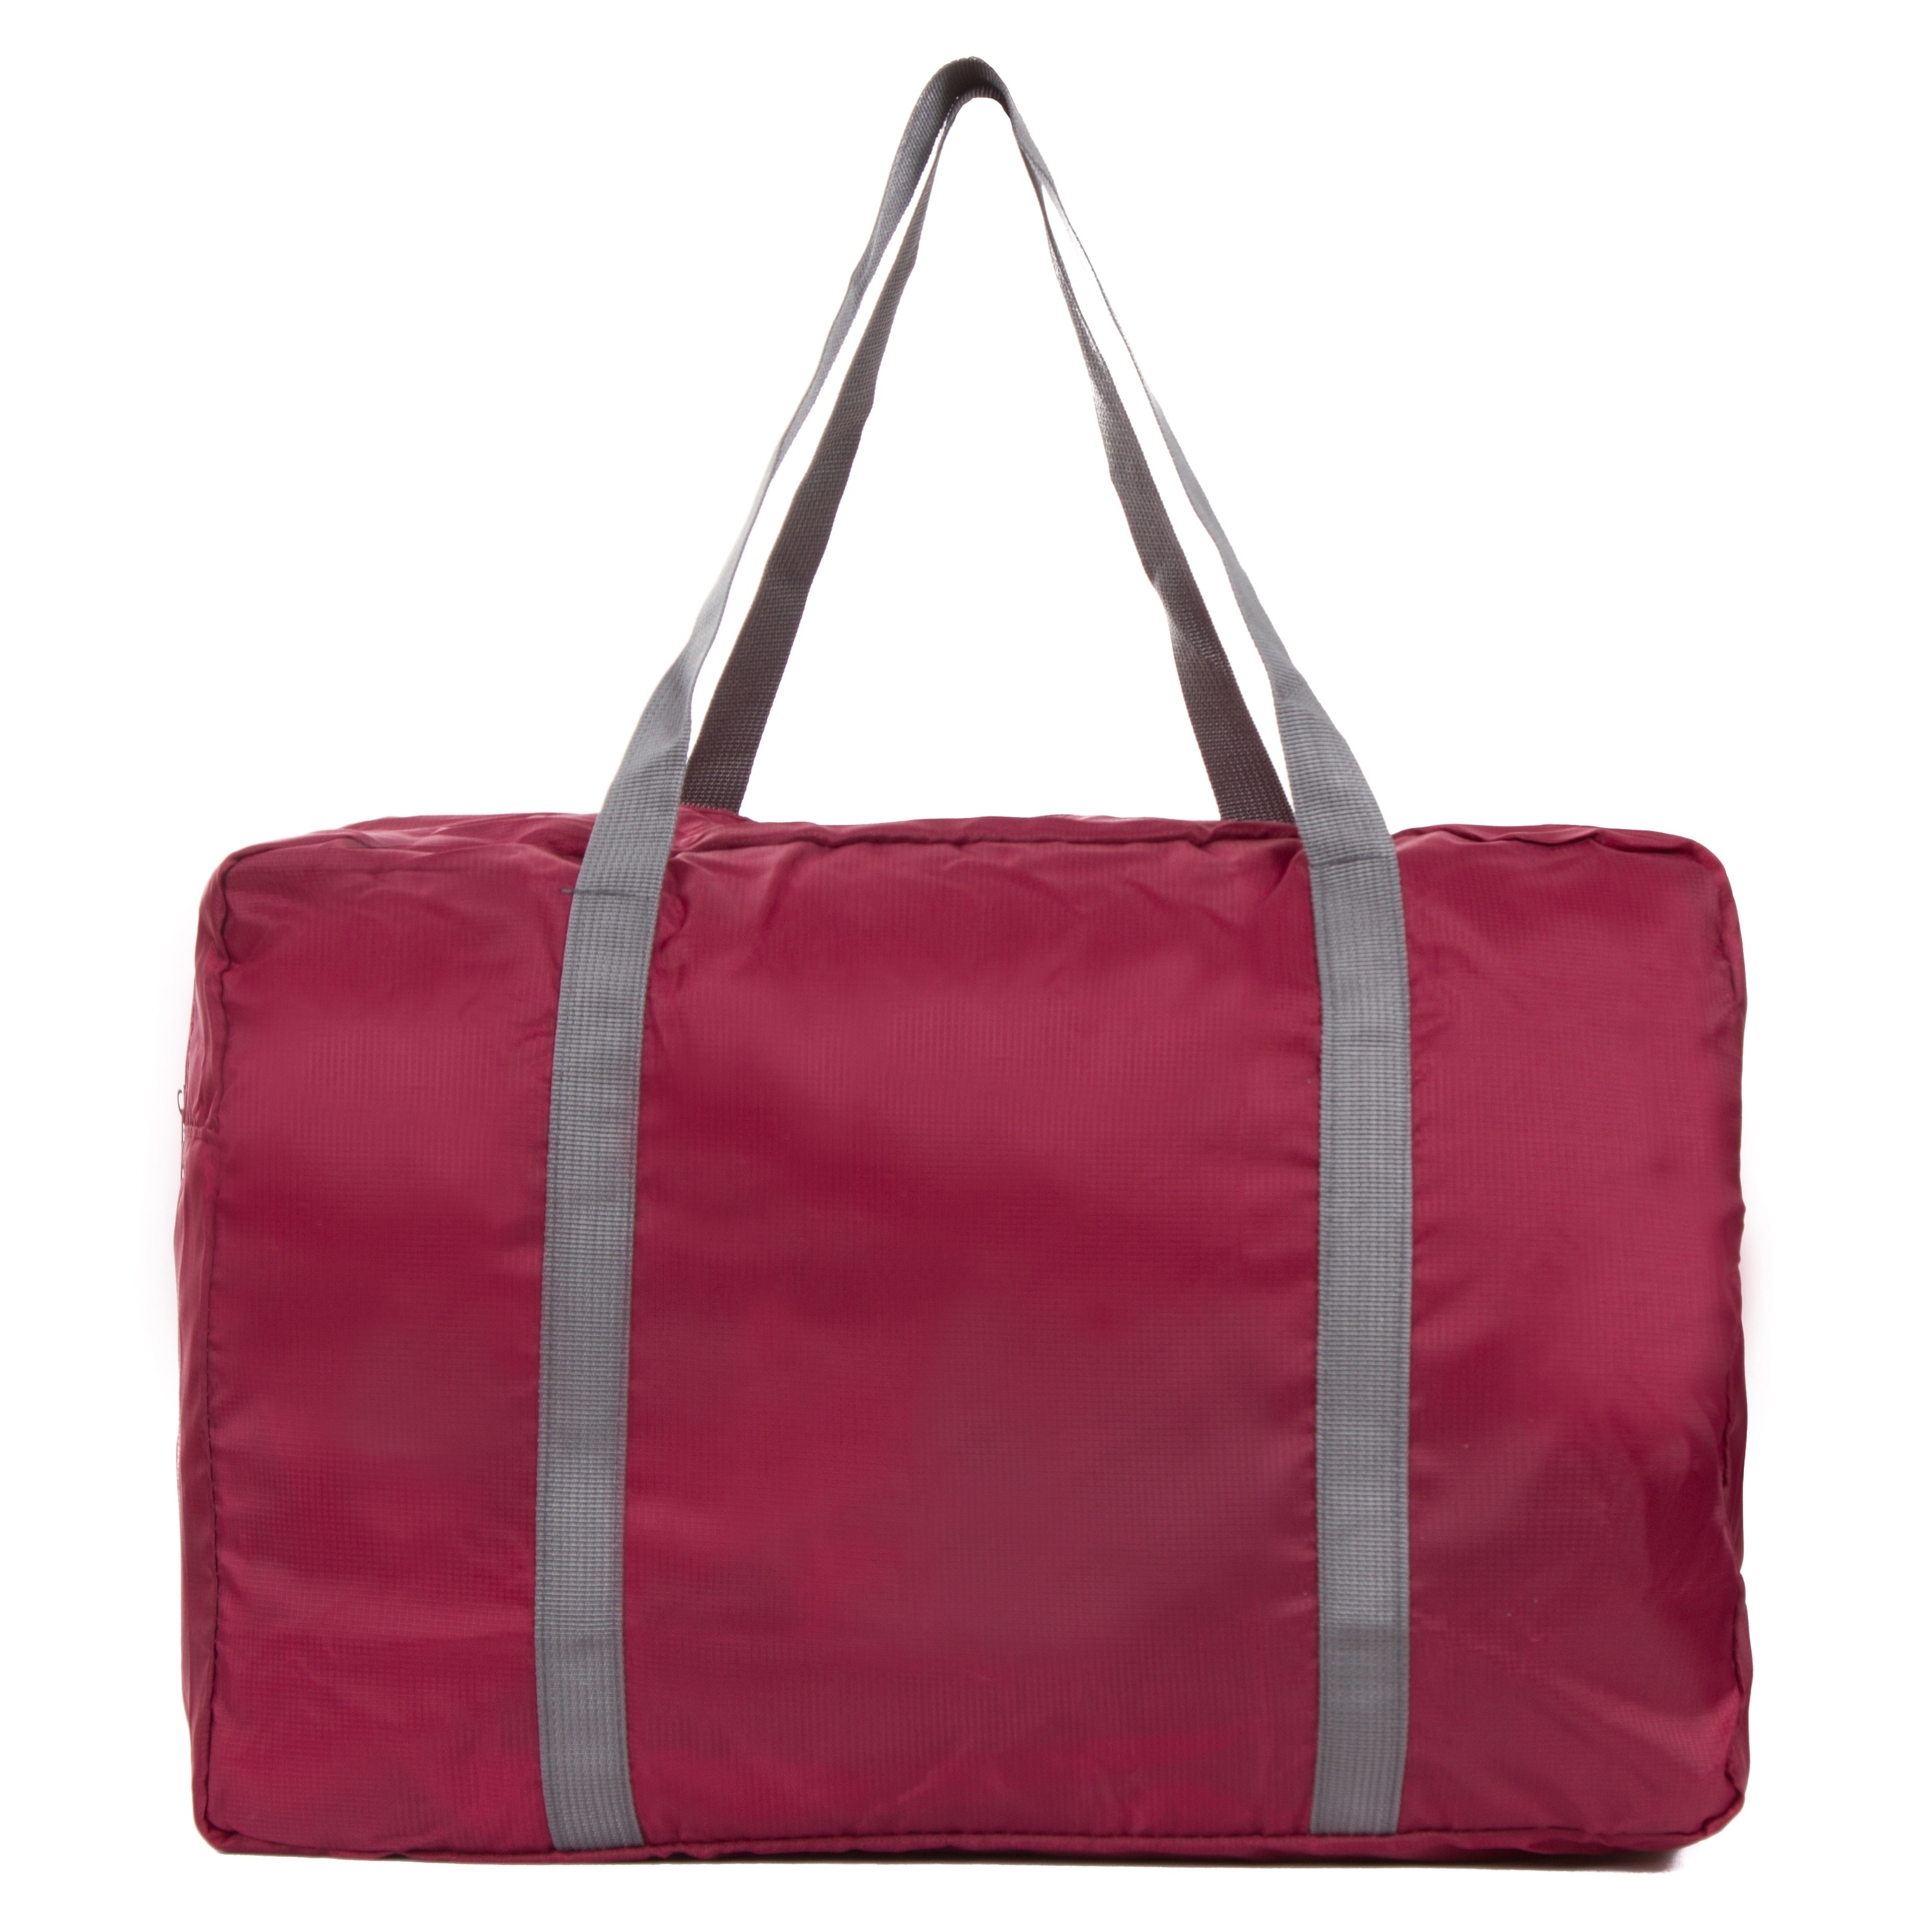 4d04e8dfd7c6 Shop Packable Duffle Bag